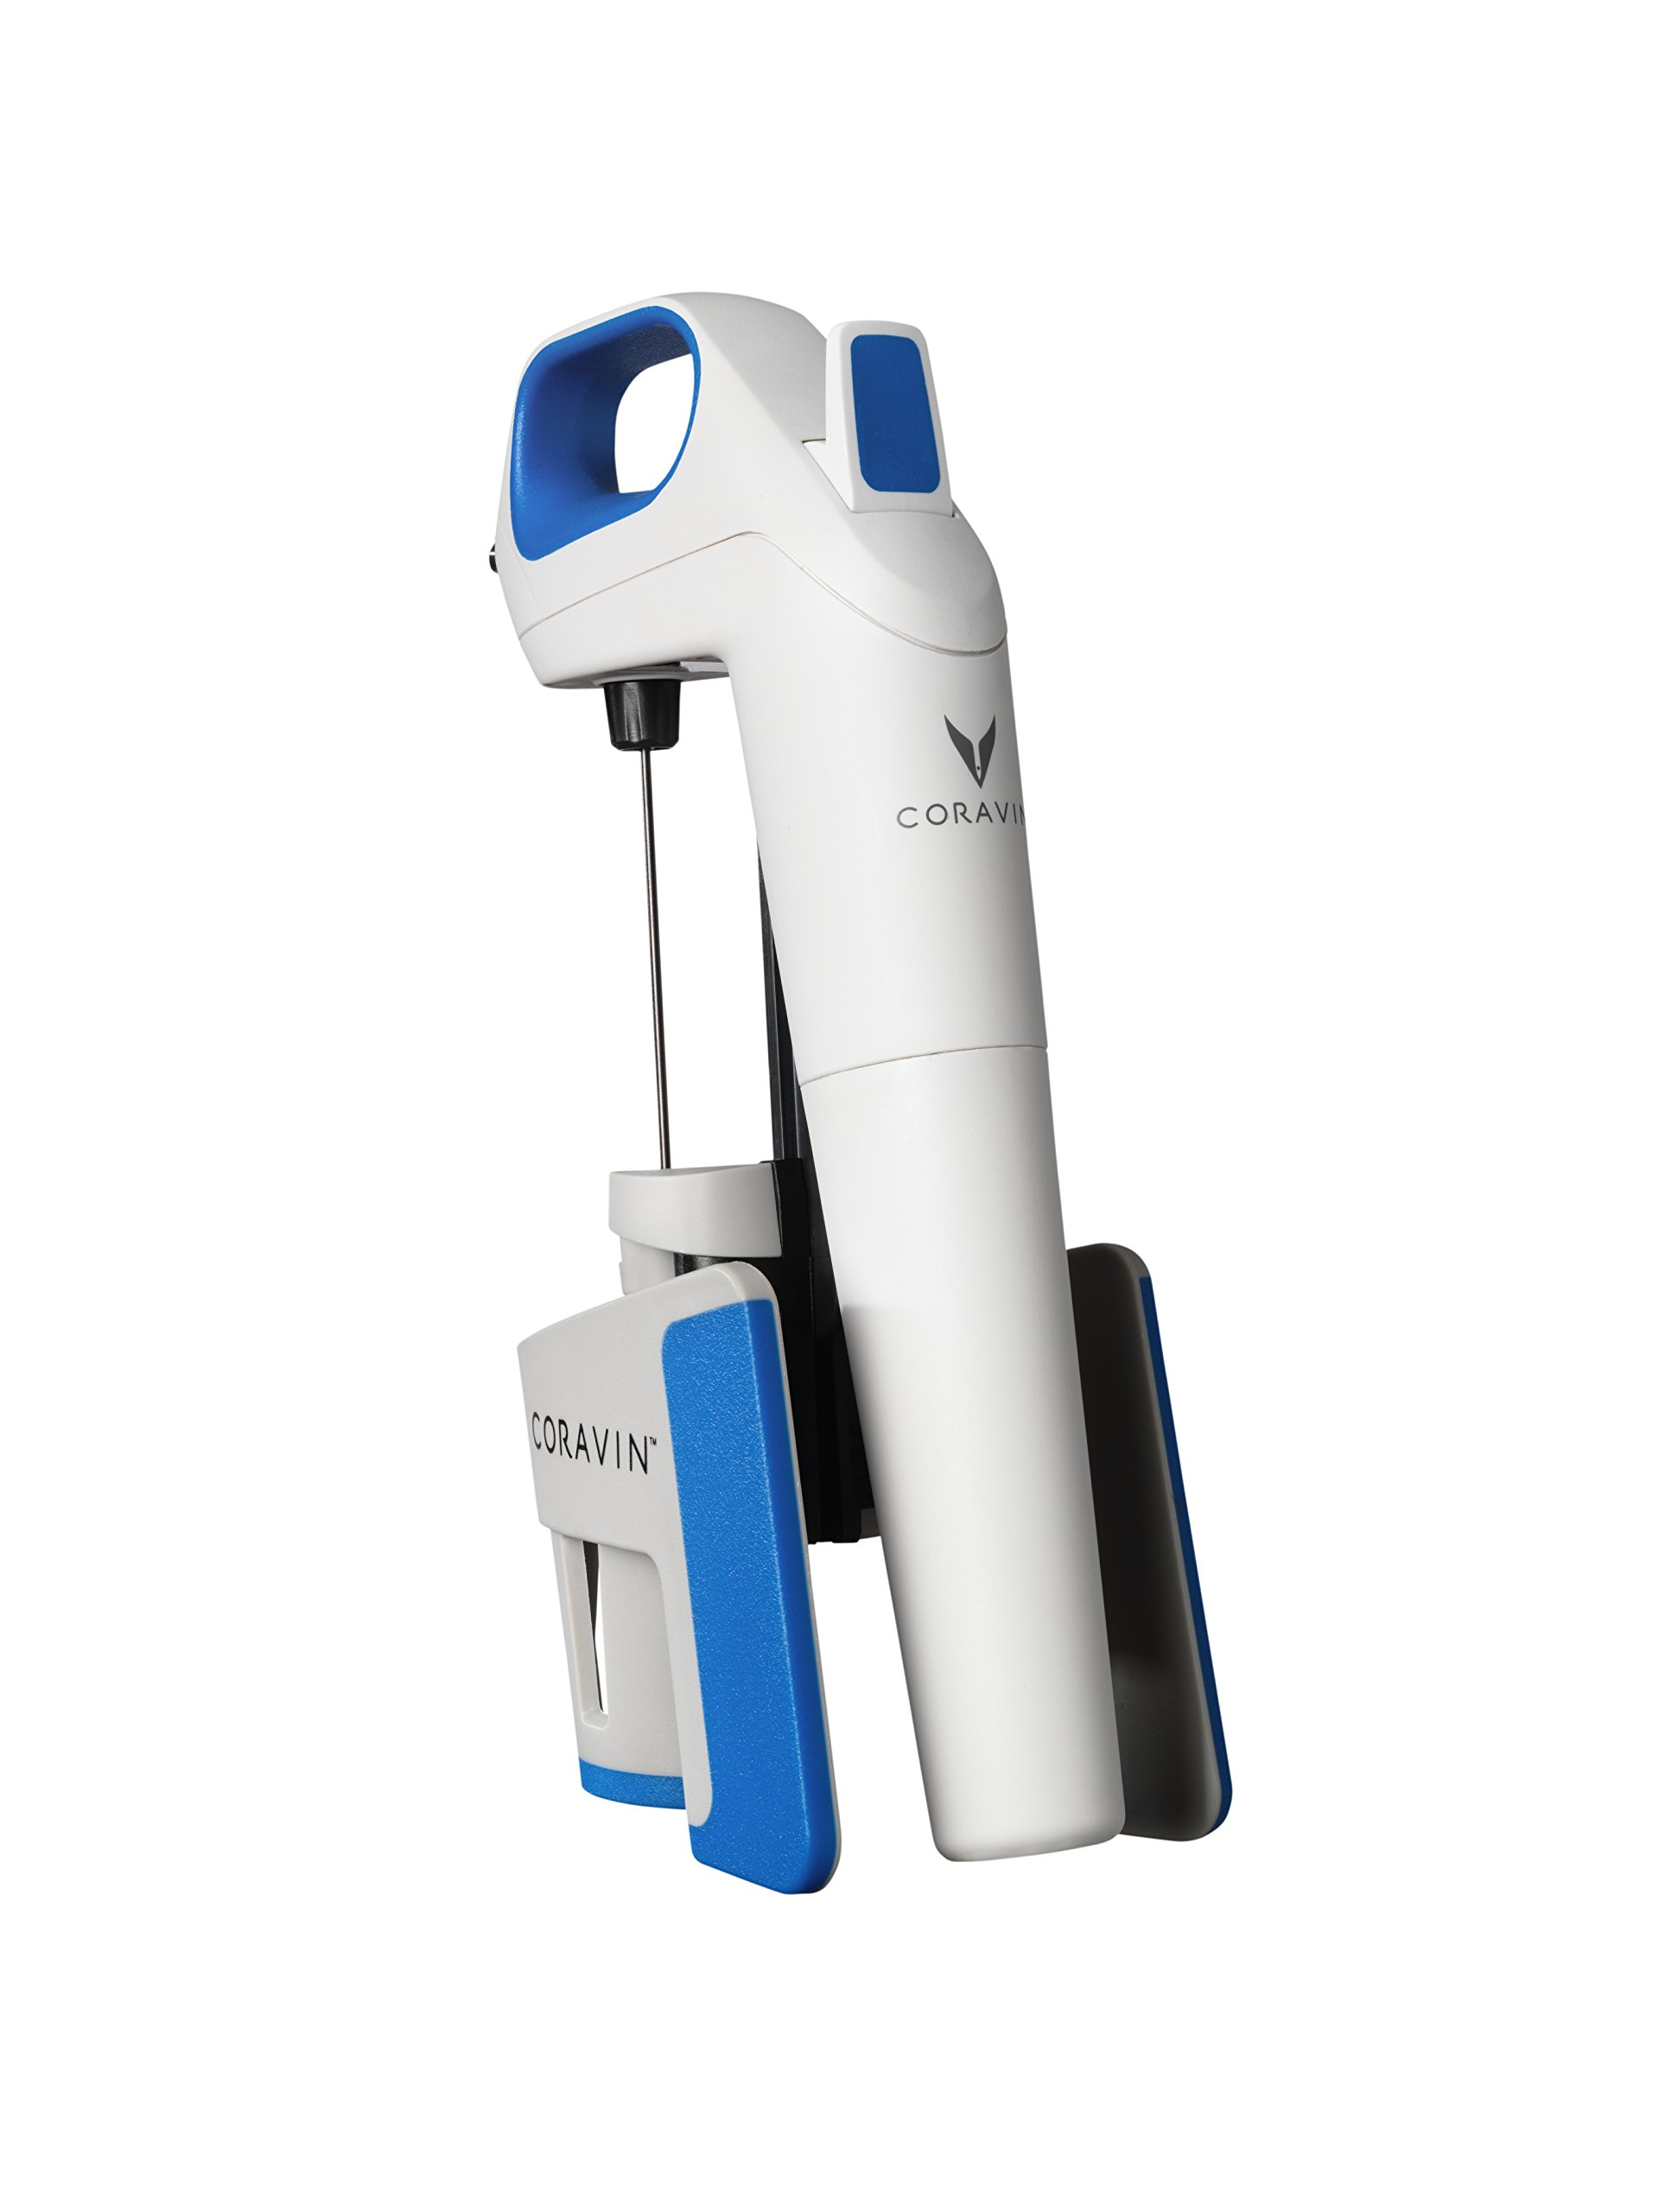 Coravin 100015 Model One System, Preservation, Cobalt Blue/White/Grey by Coravin (Image #5)